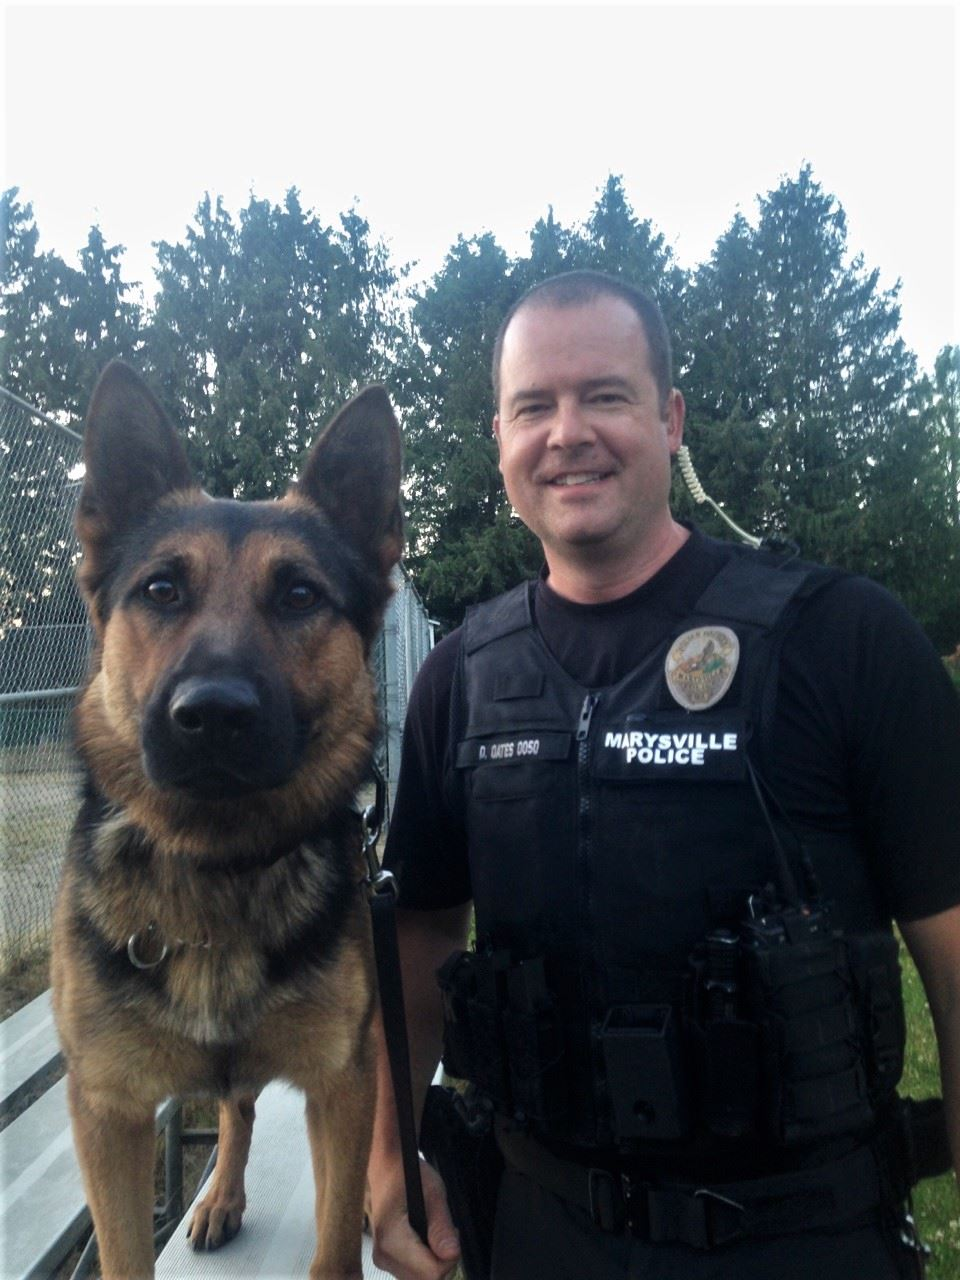 K9 Copper and Officer Oates standing outside